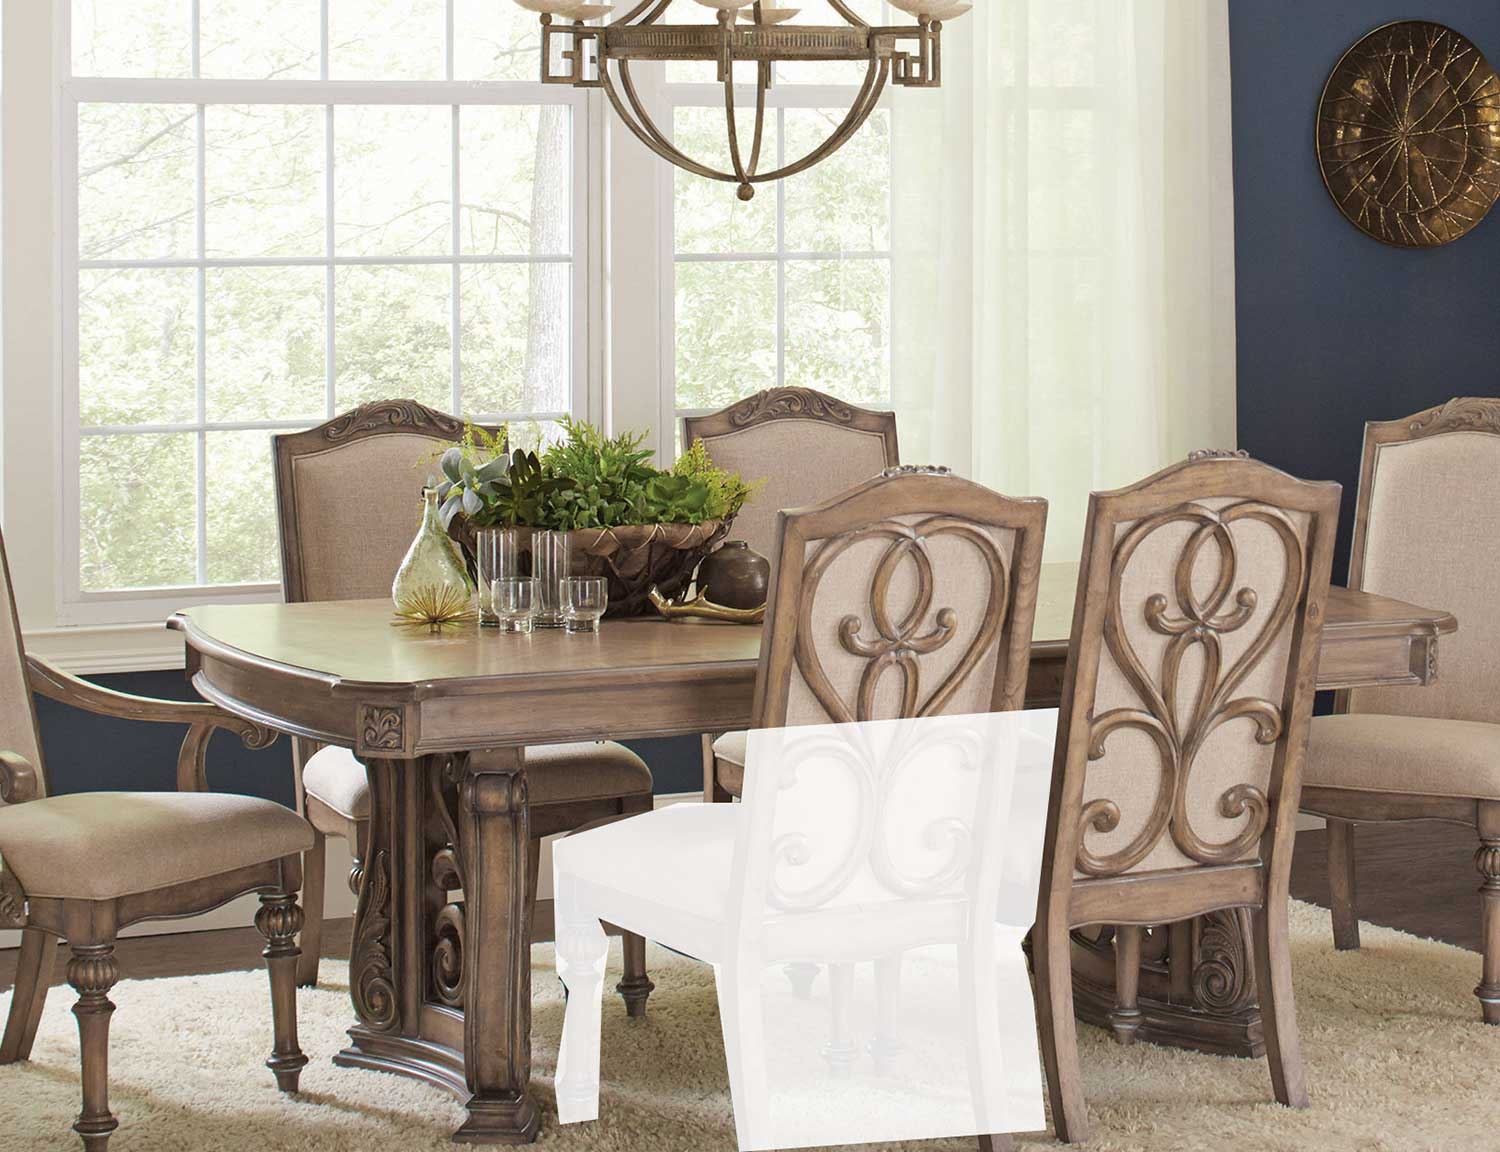 Coaster iliana rectangular dining table with leaf antique linen 122211 at homelement com